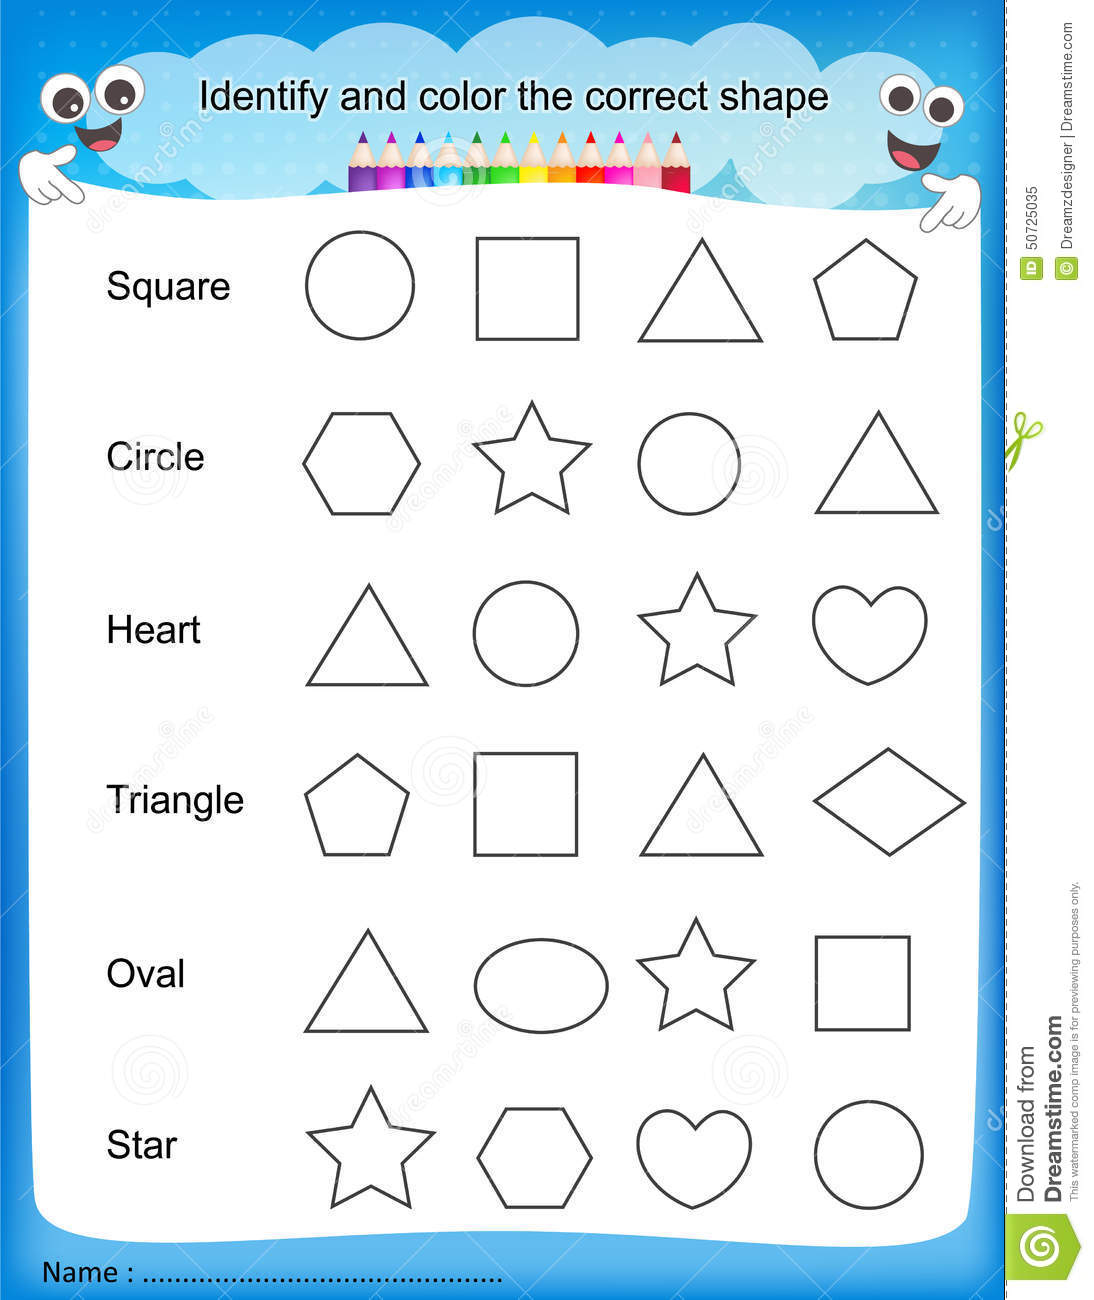 worksheet Identify Shapes Worksheet identify and color the correct shape worksheet stock vector worksheet